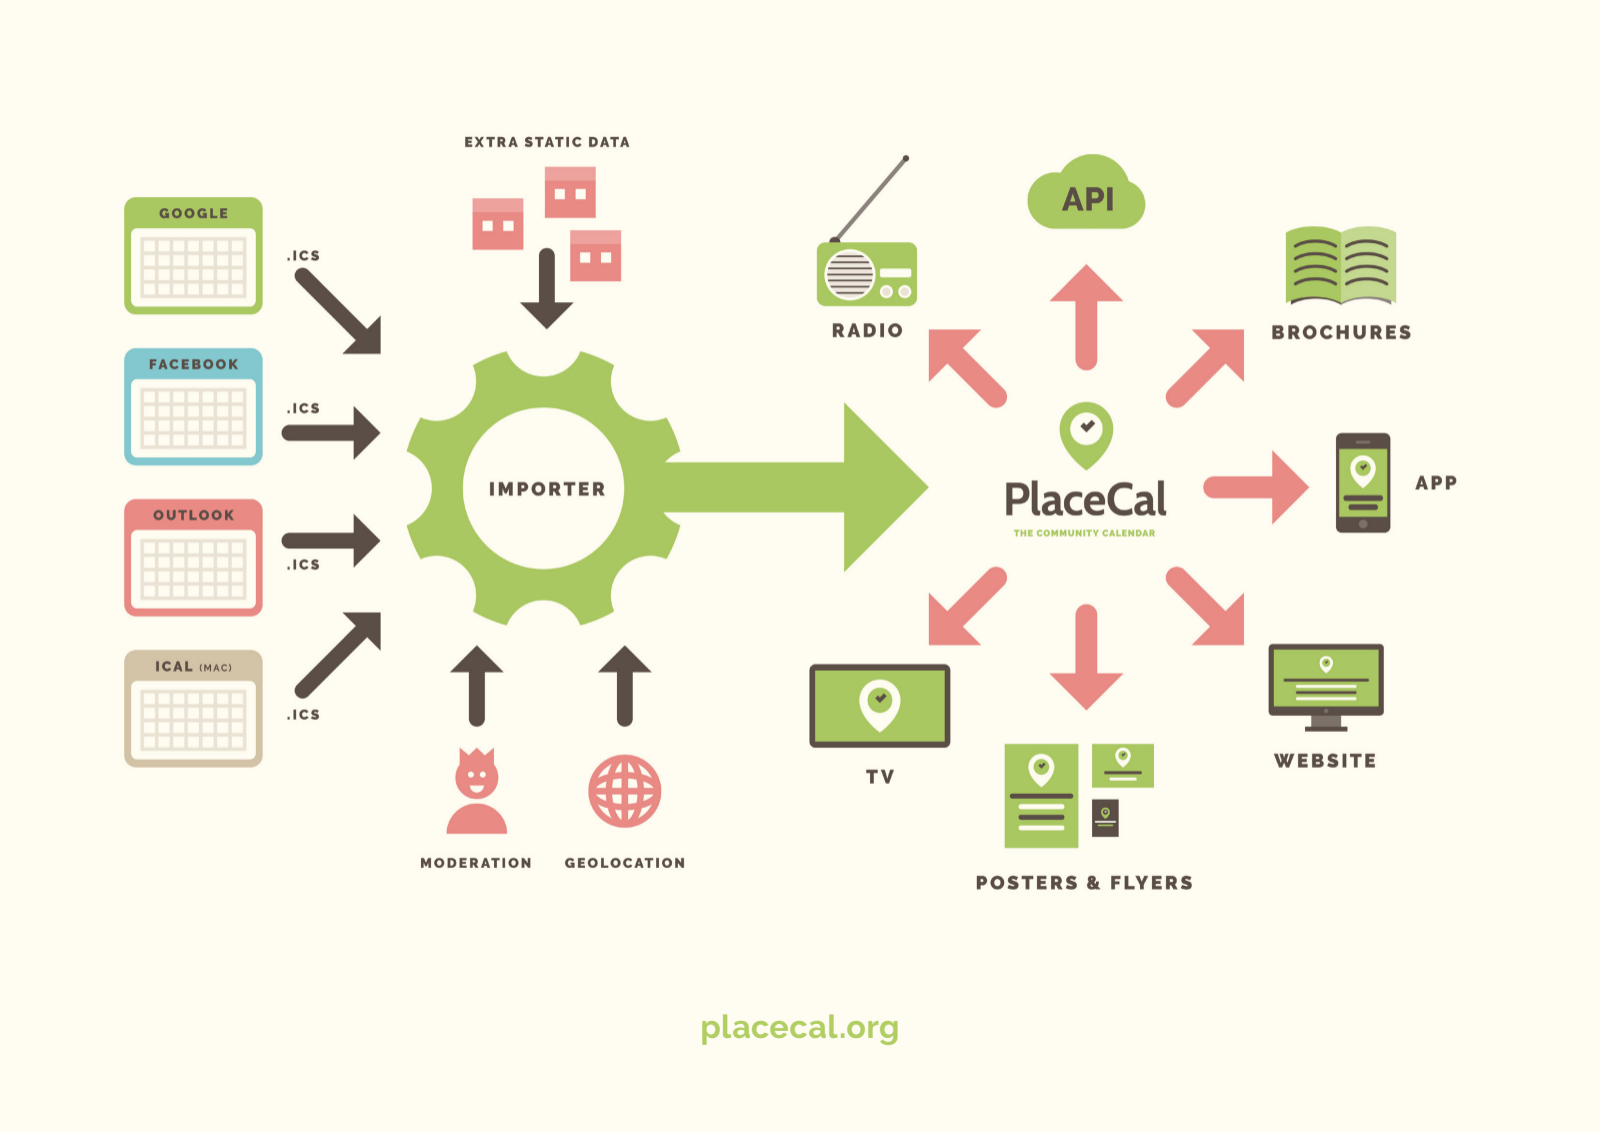 PlaceCal technological infrastructure